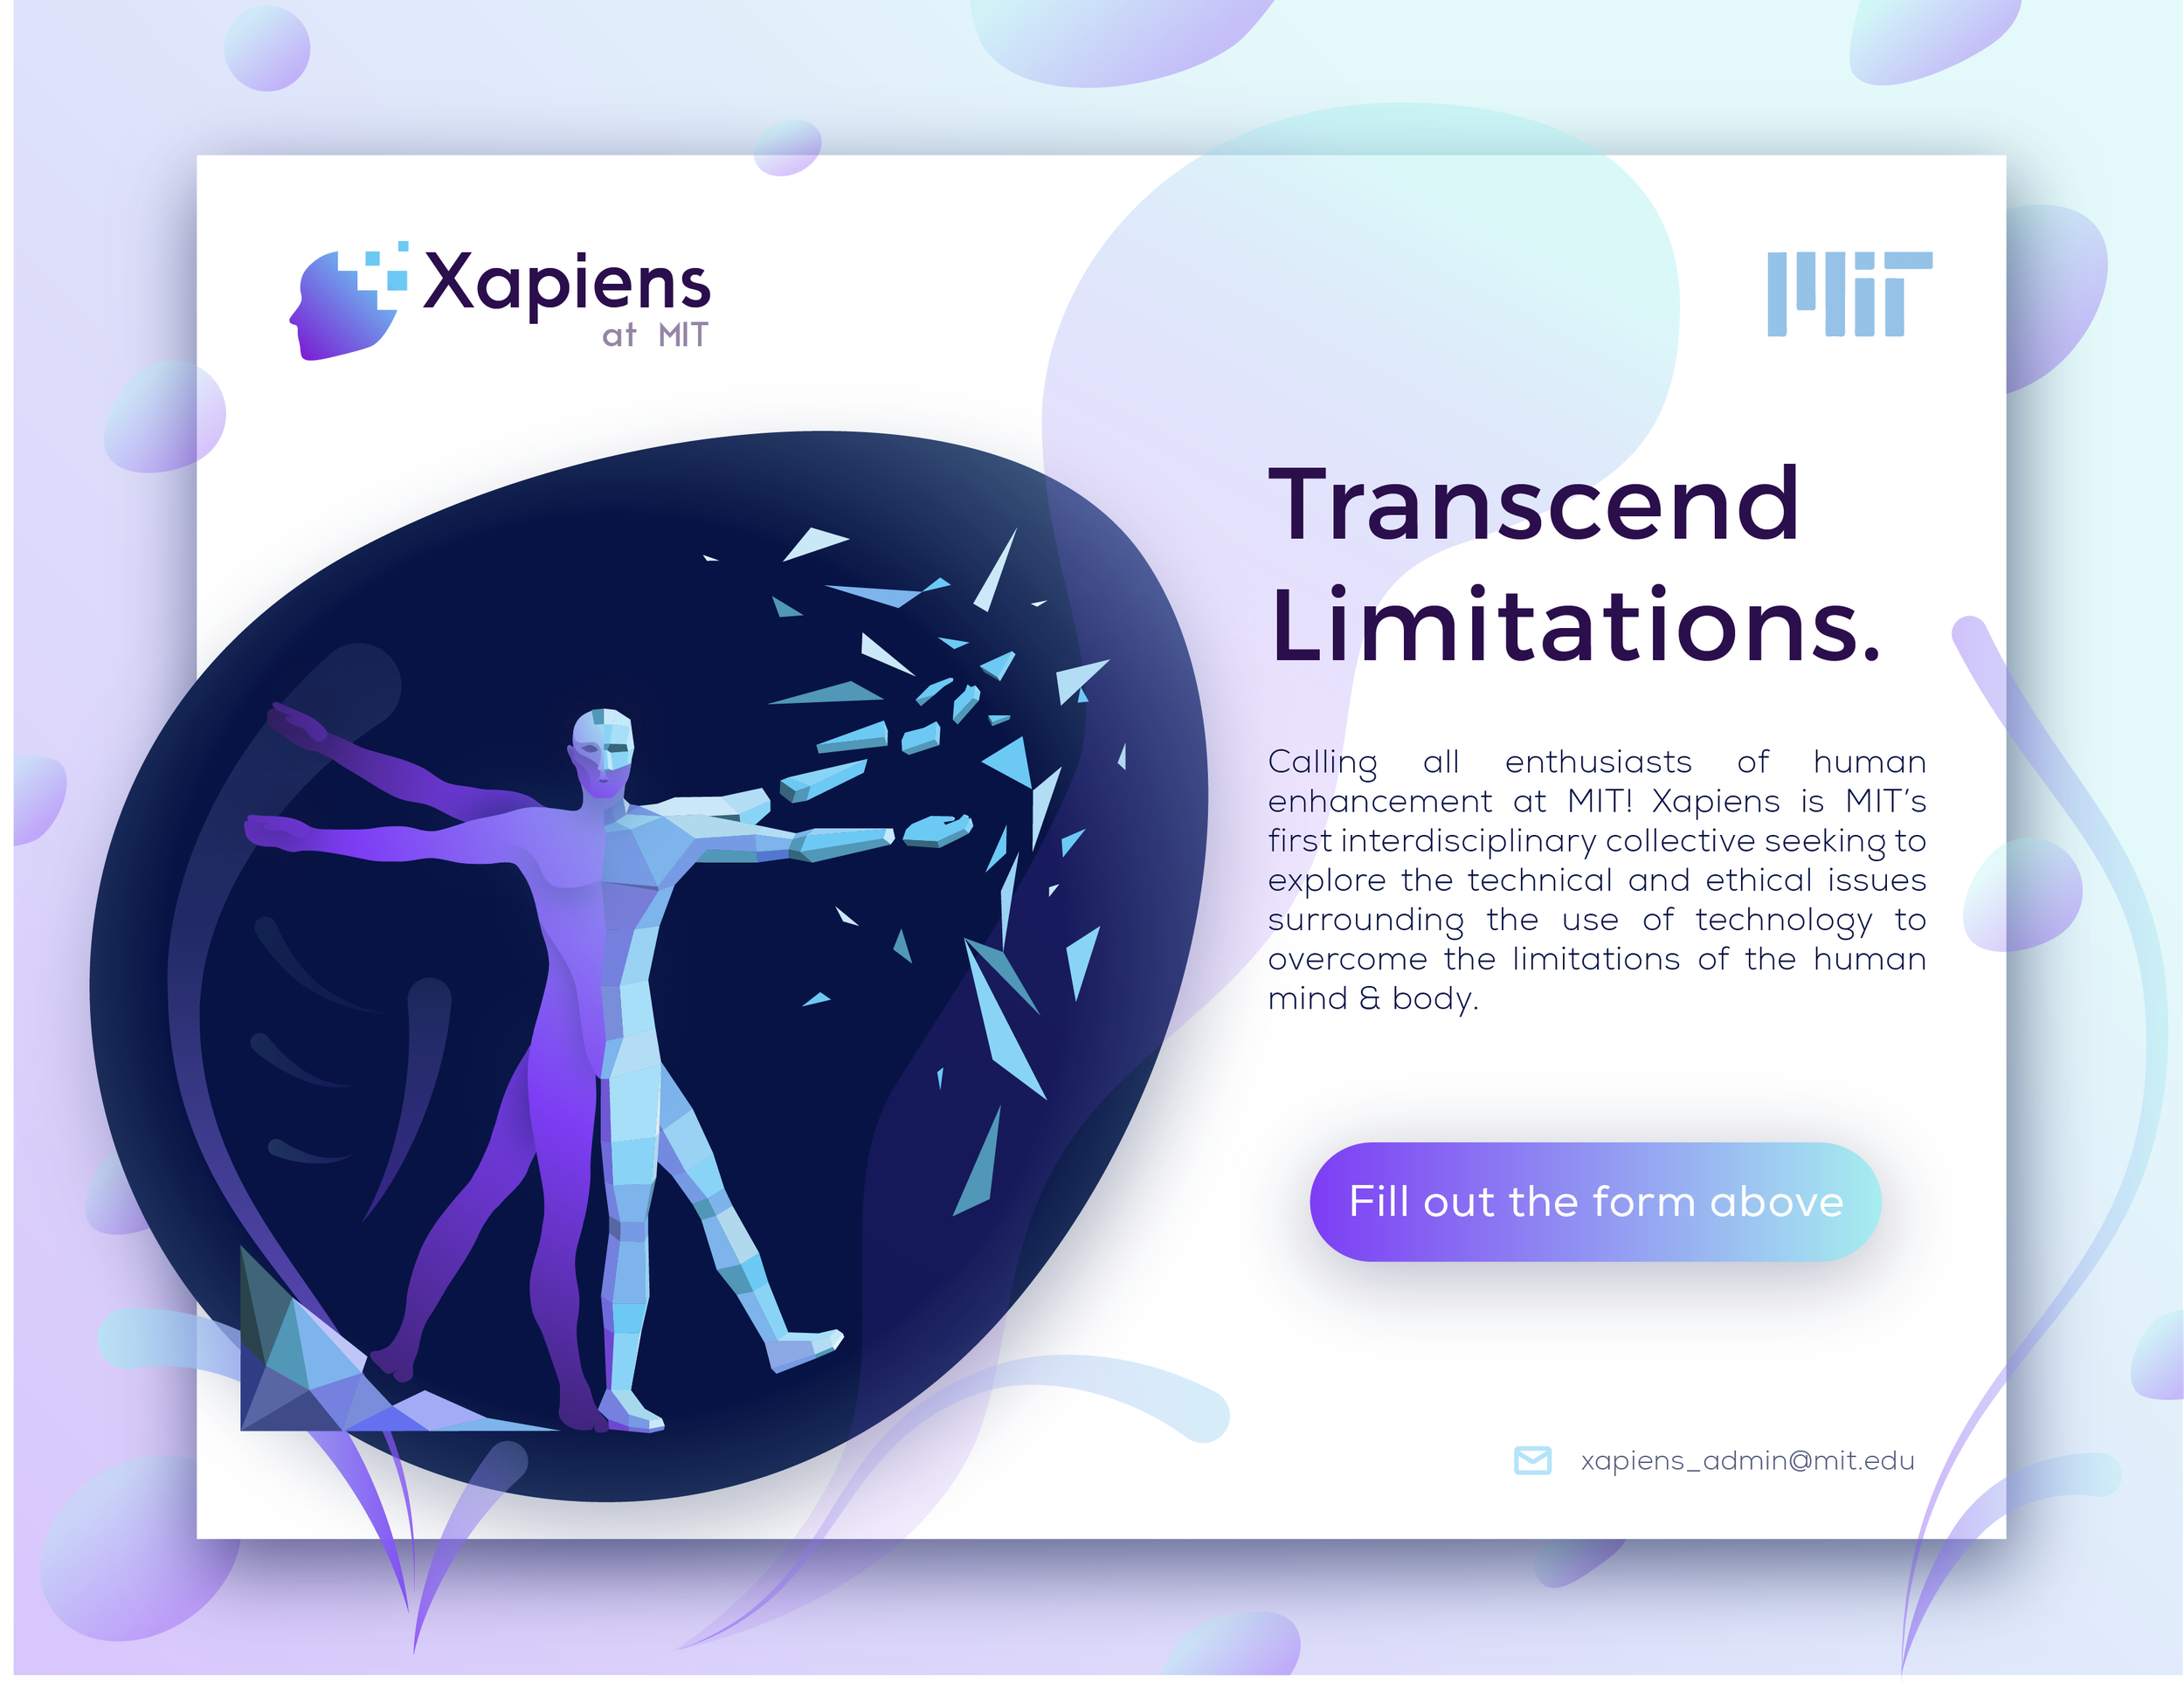 First post on Social Media used this illustration — more than 80 MIT students filled out the Google Form to help shape Xapiens's direction and vision.  Designed by Siranush Babakhanova.